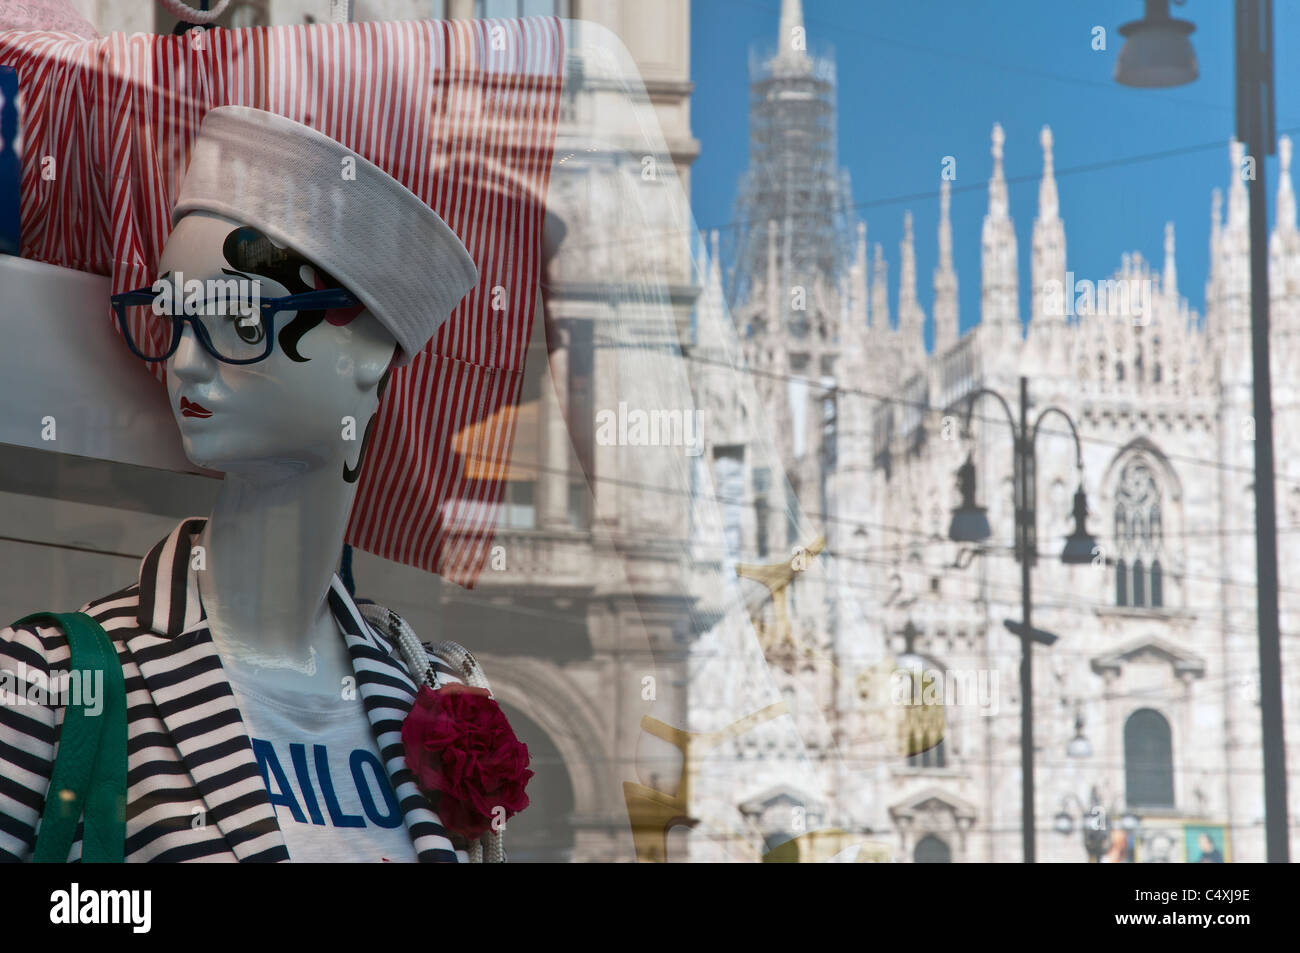 Fashion dummy in a shop window with Duomo cathedral reflected, Milan, Italy - Stock Image